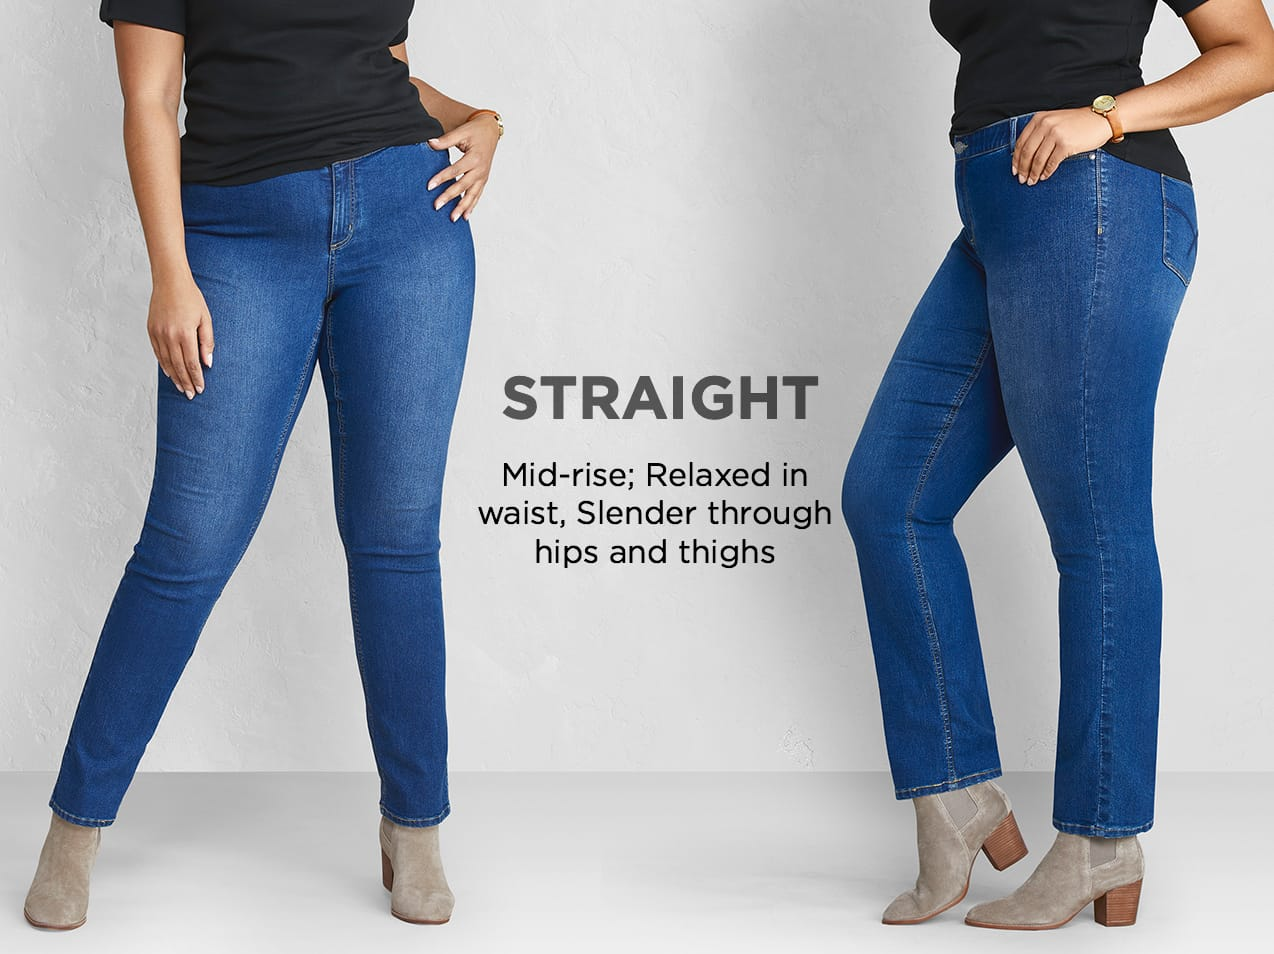 Straight: Mid-rise; Relaxed in the waist, Slender through the hips and thighs.